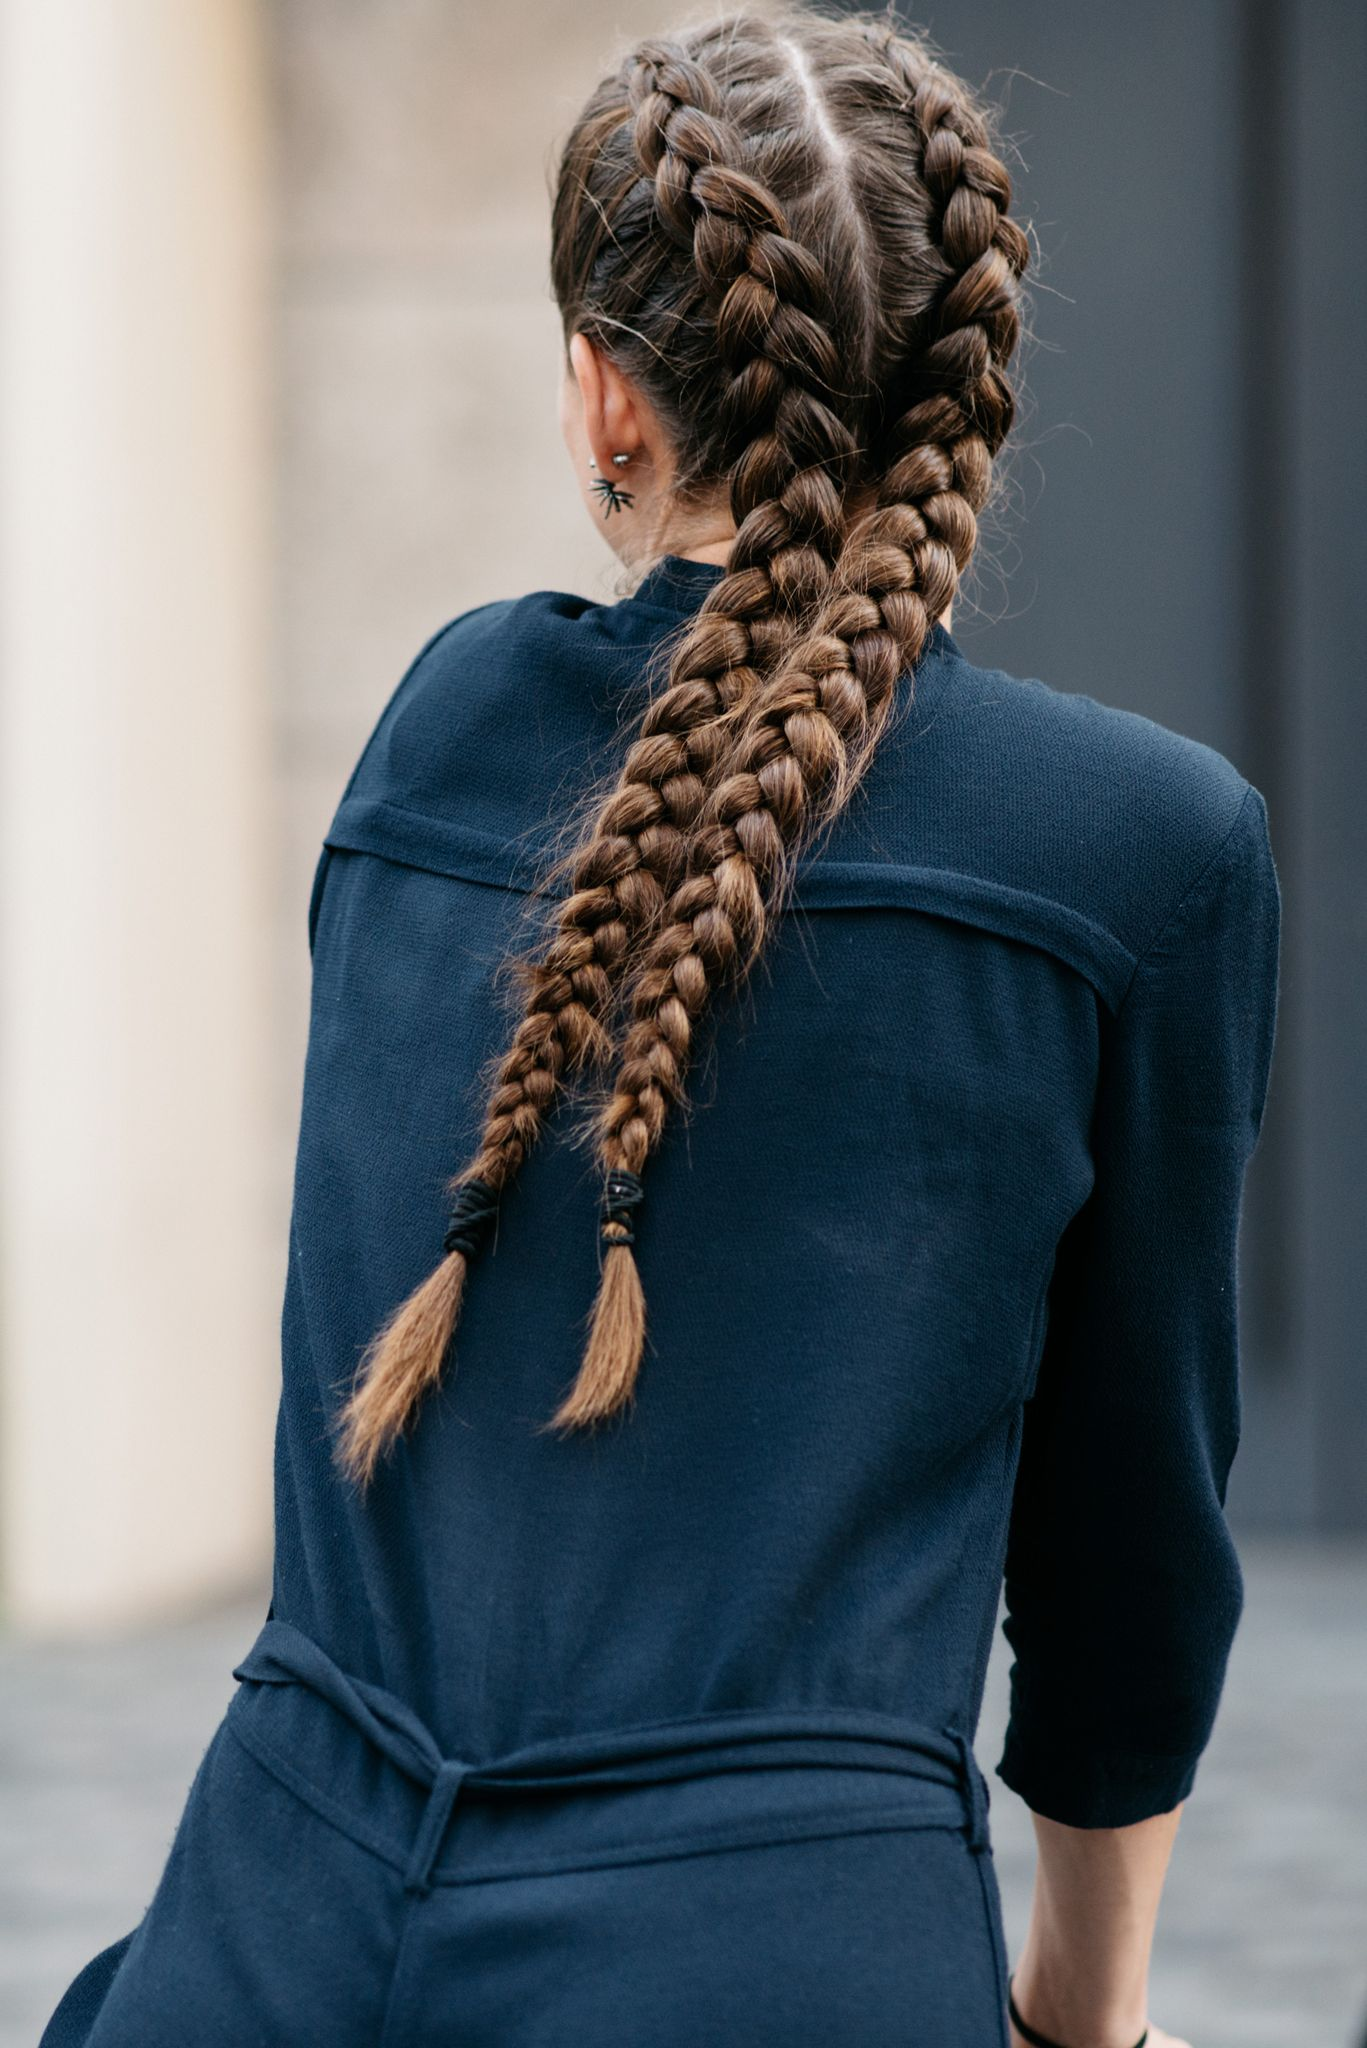 Awe Inspiring Double French Plaits French Braid Pigtails Street Styles And Hairstyle Inspiration Daily Dogsangcom